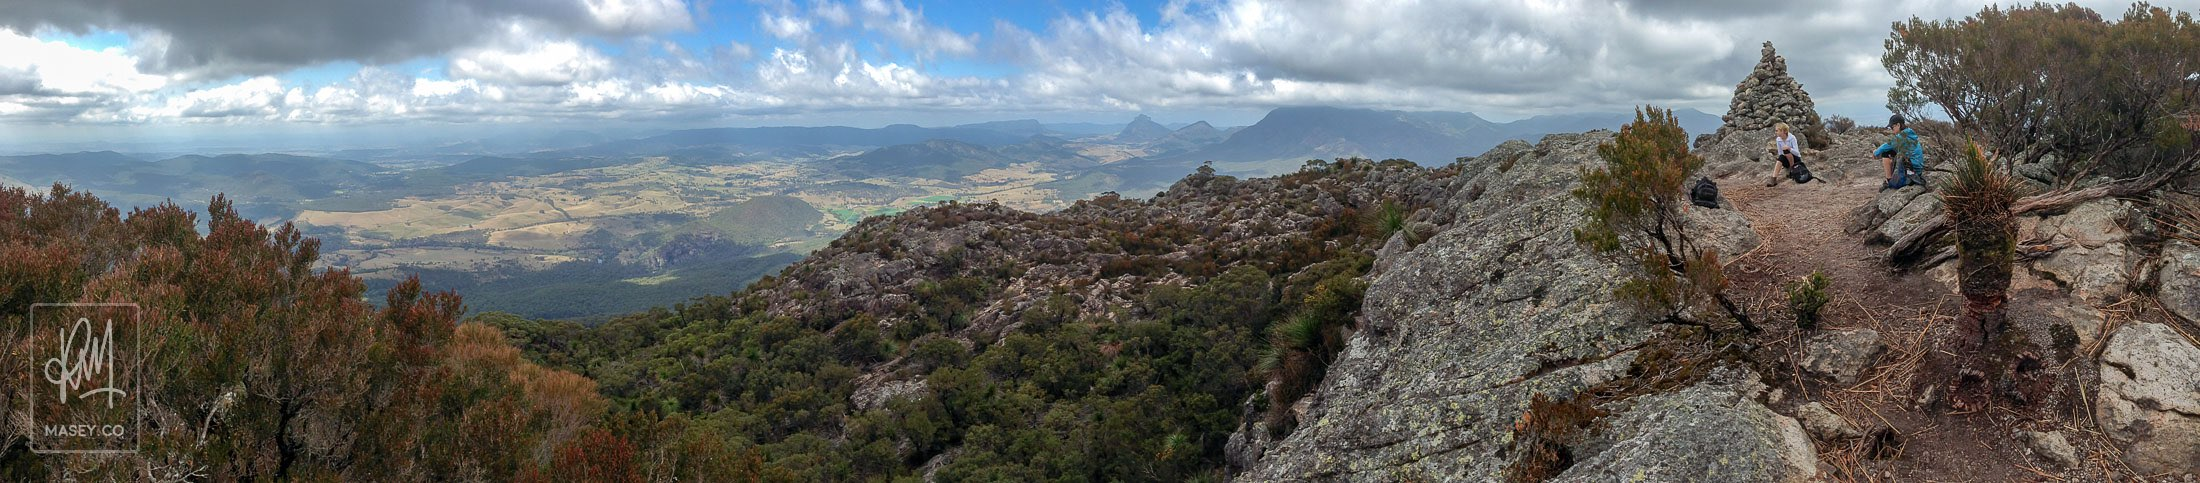 The panoramic views from the top of Mount Maroon are some of the best in South-East Queensland